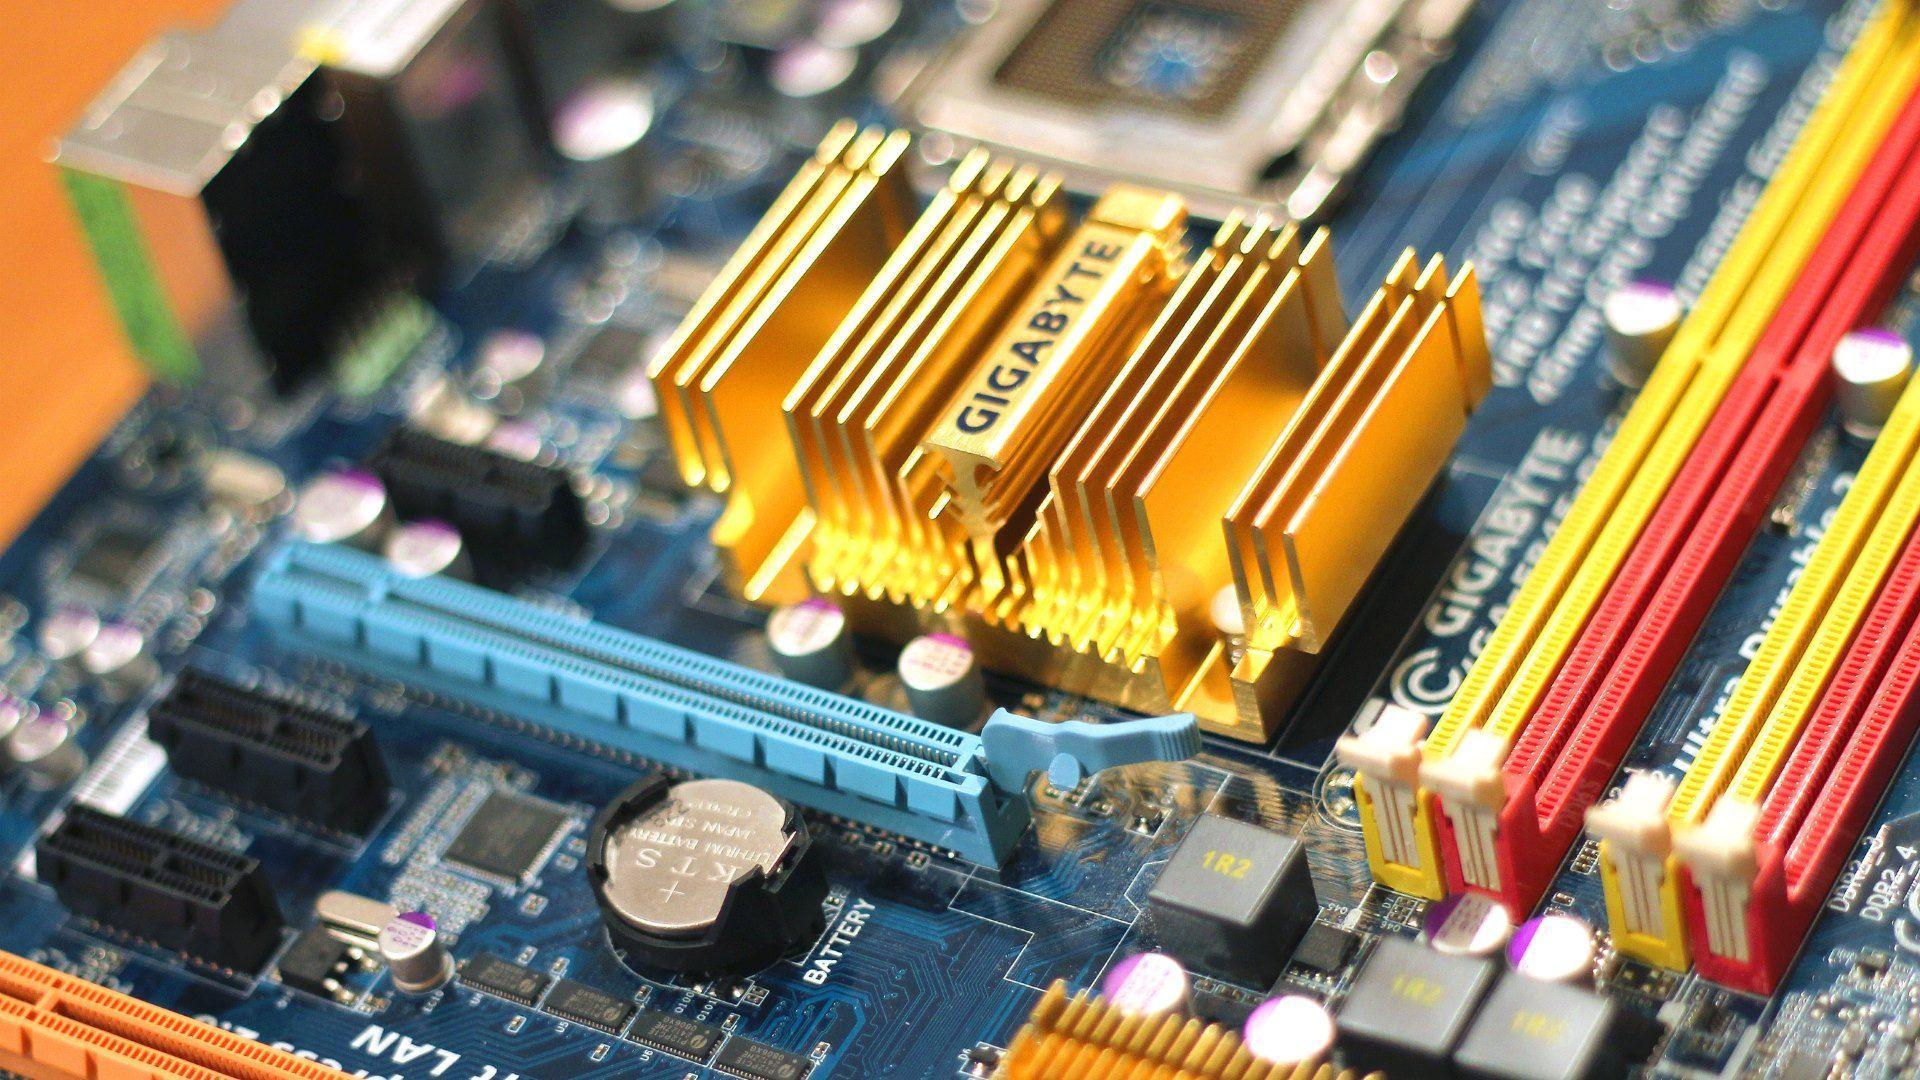 Motherboard Wallpapers · 4K HD Desktop Backgrounds Phone Images